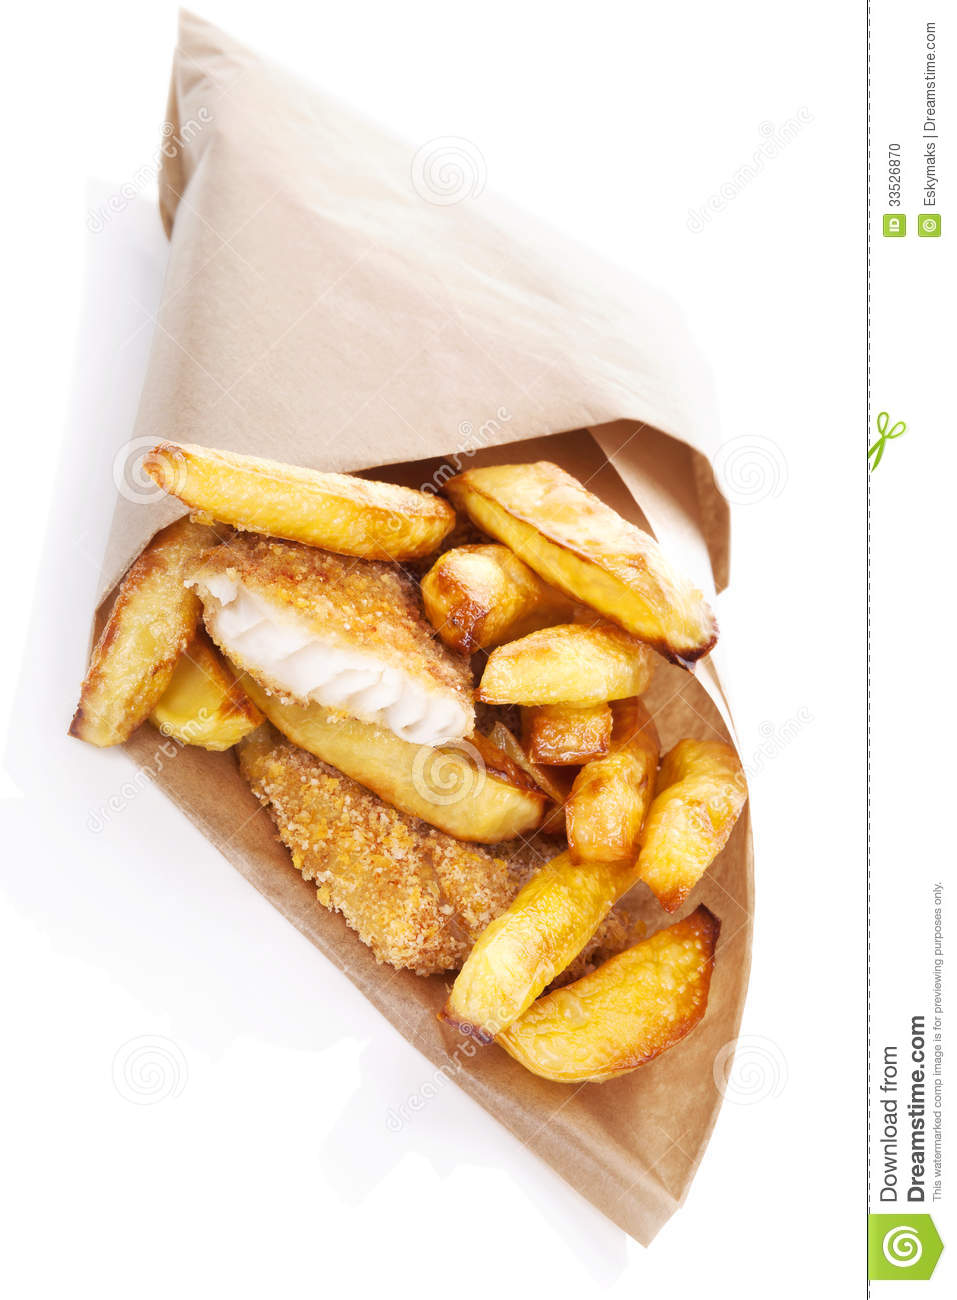 Fish and chips stock photo image 33526870 for Fast food fish